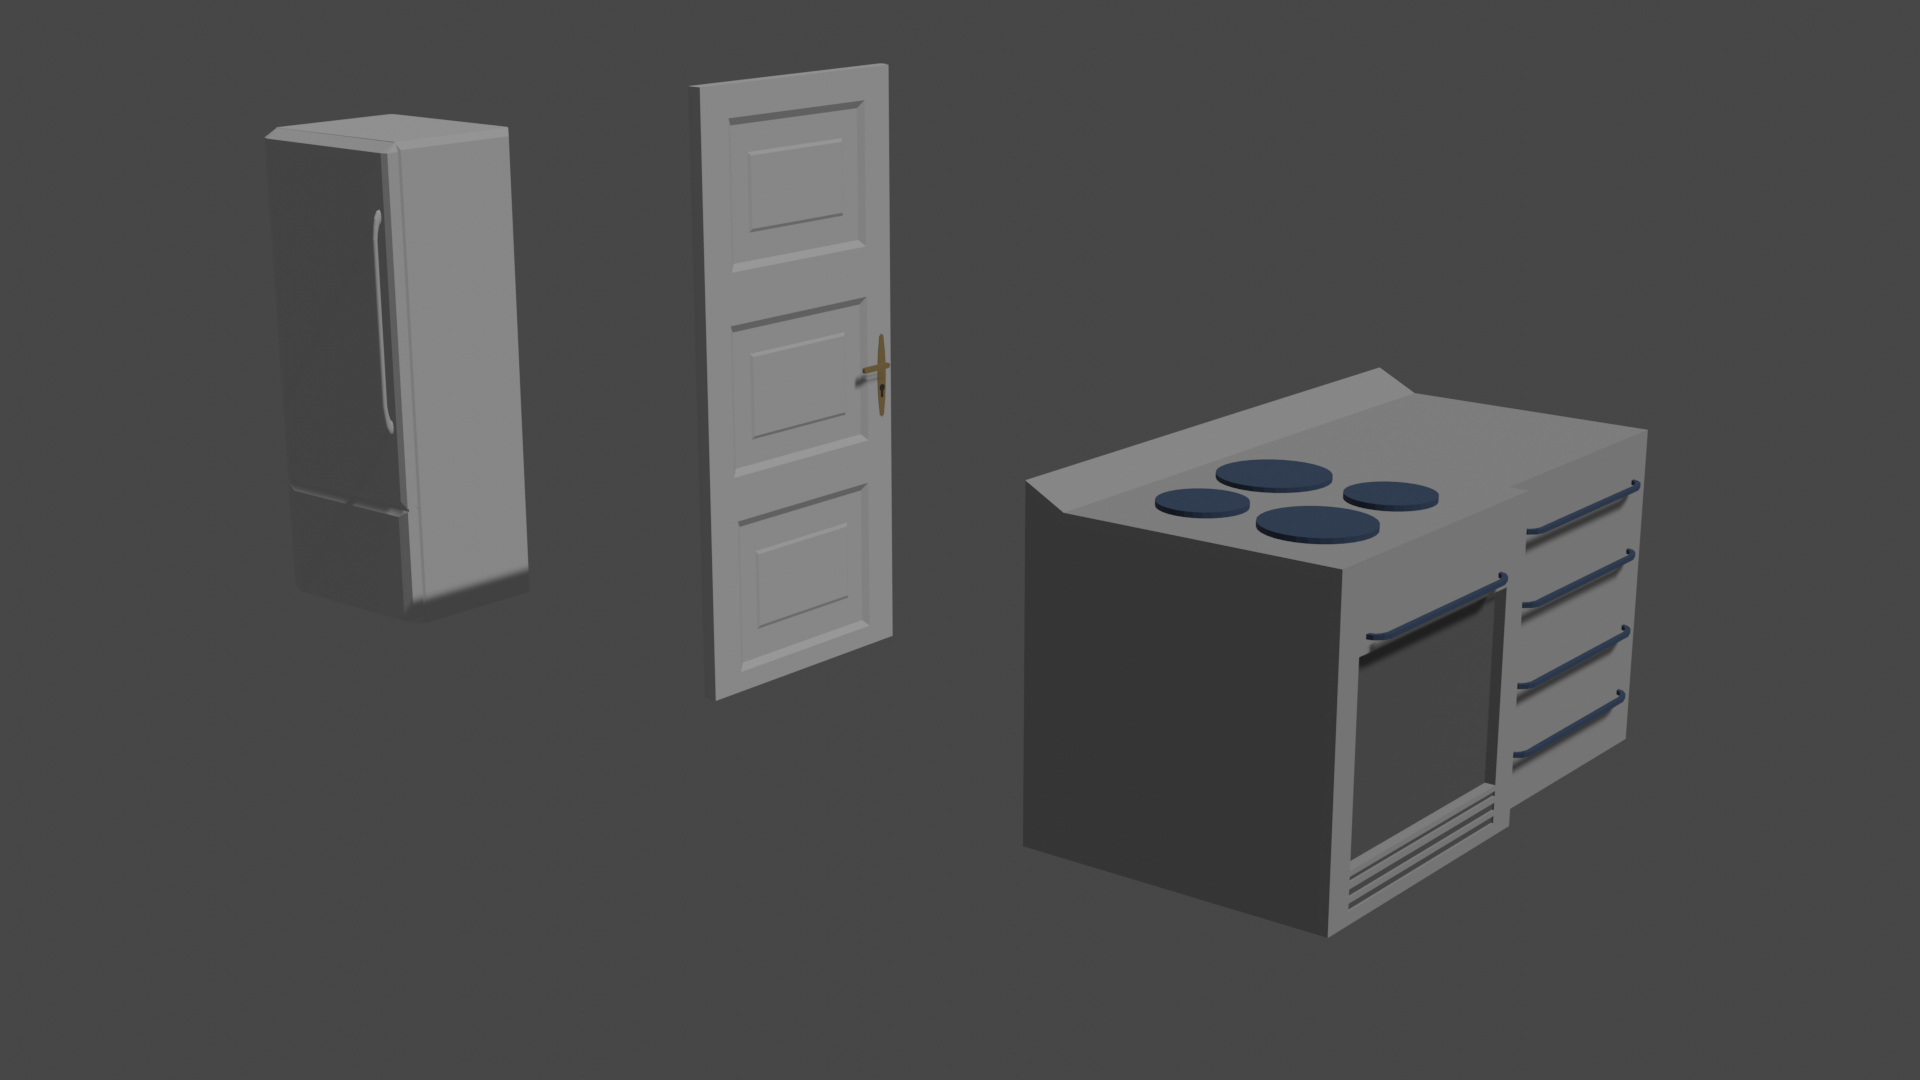 Low Poly Furniture  preview image 3